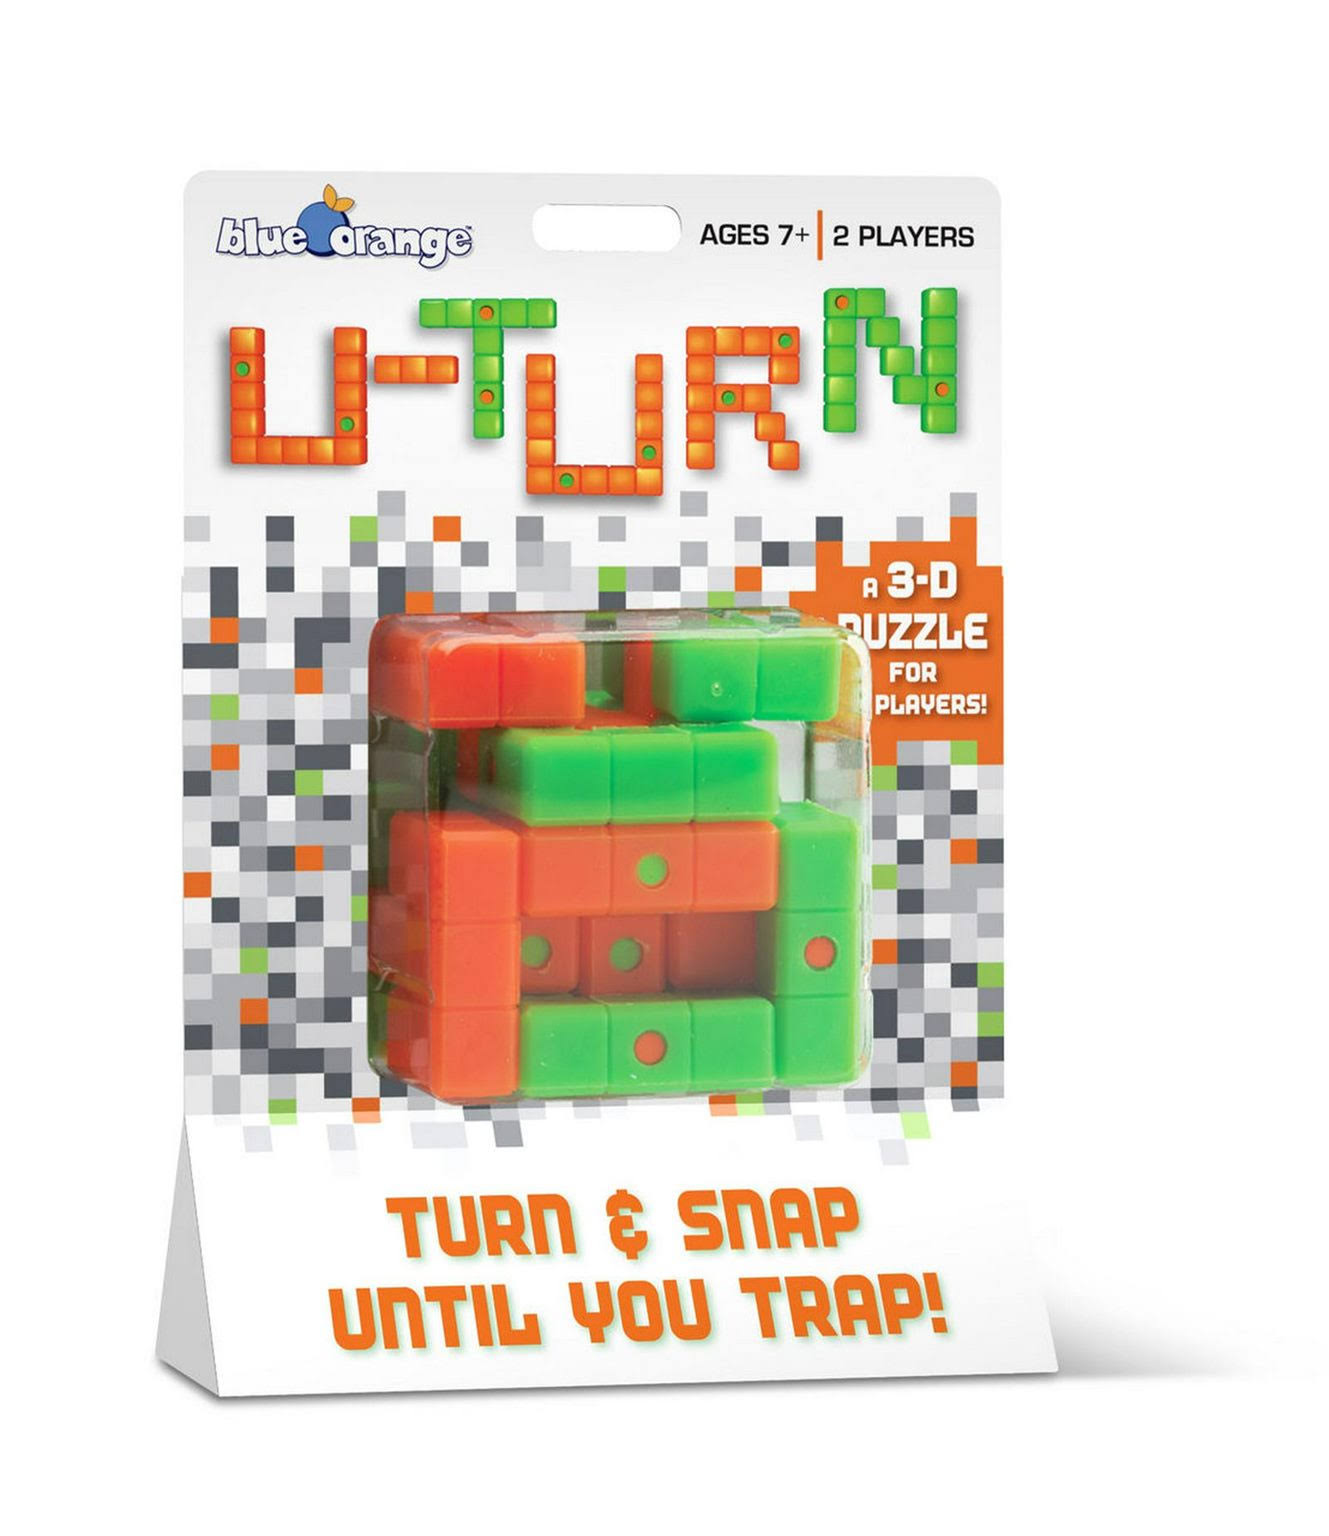 Blue Orange Board Games - U Turn Game